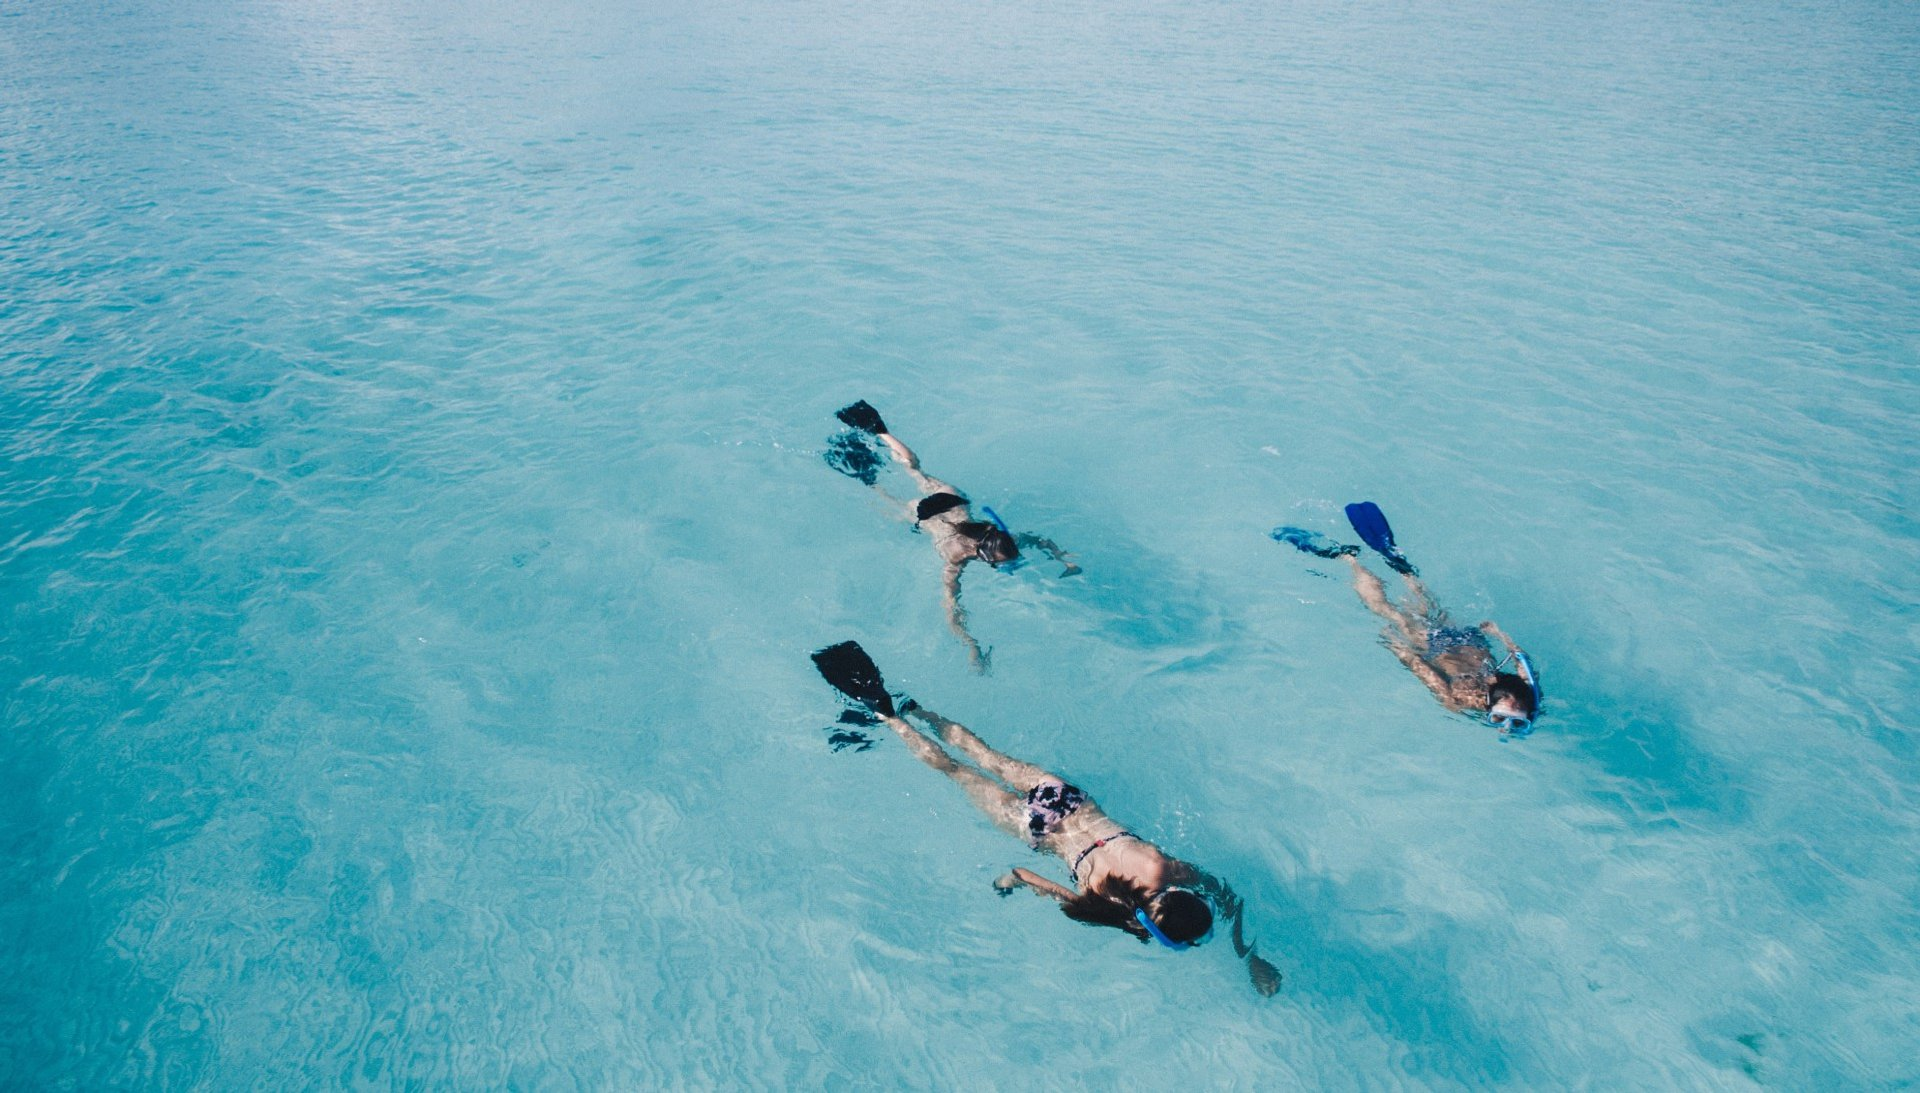 Scuba Diving & Snorkeling in Maldives 2020 - Best Time